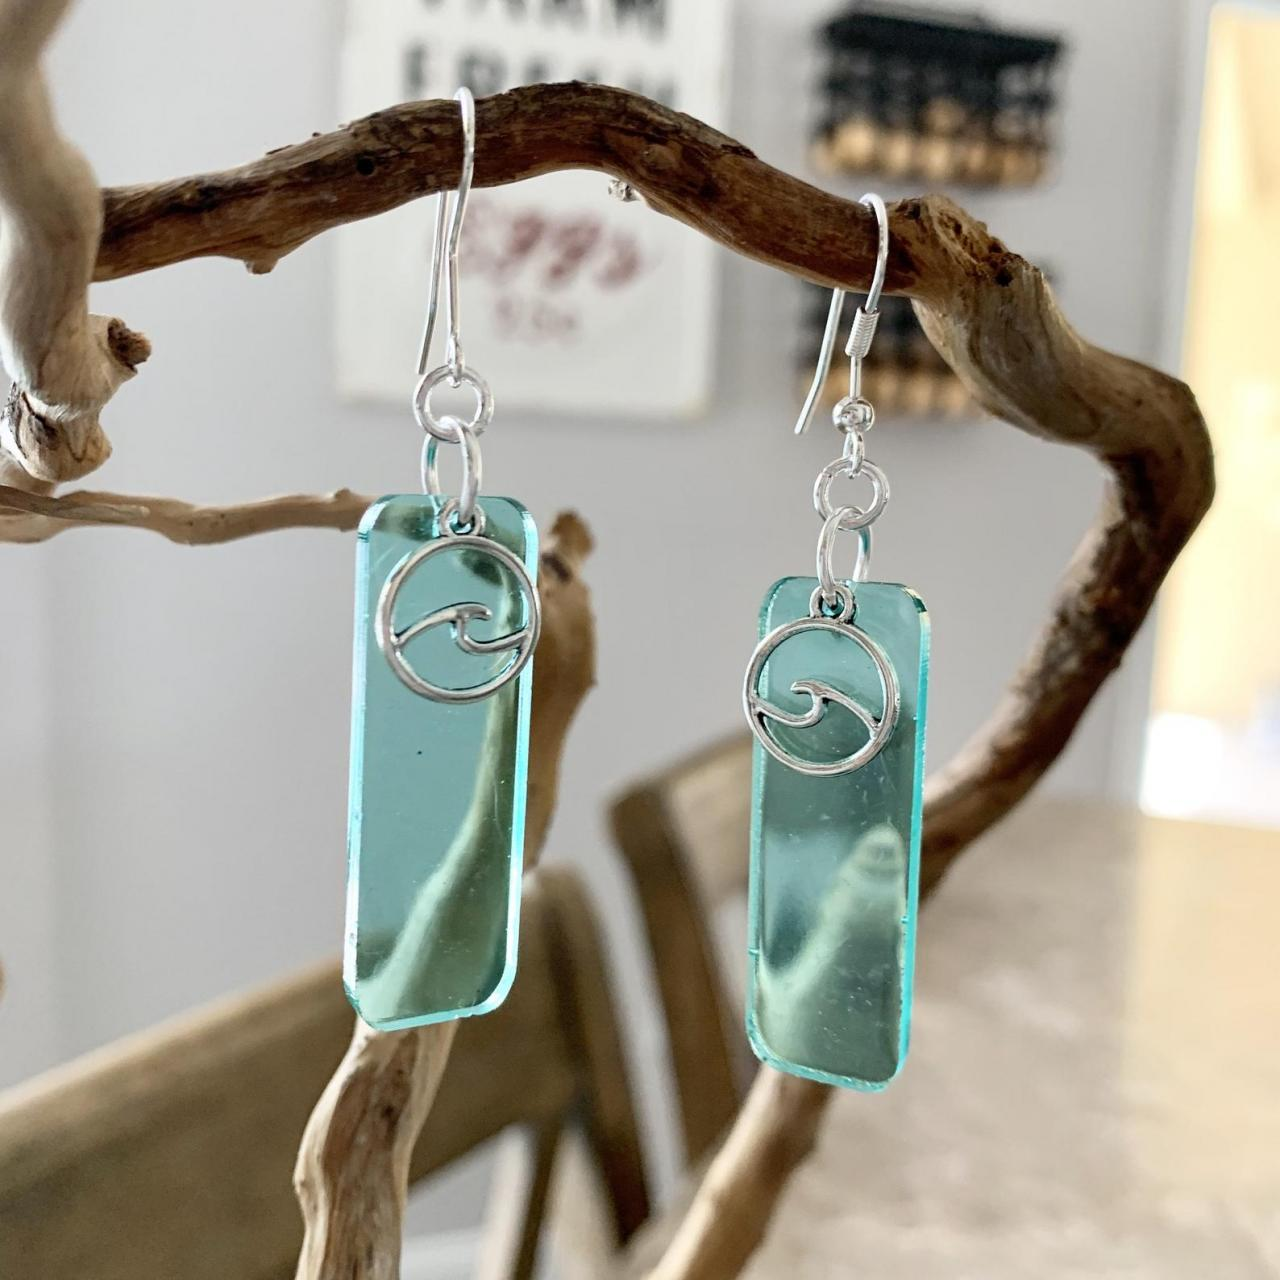 Resin art,wave earrings,beach jewelry,summer earrings,ocean earrings,surf,tropical,vacation gift,graduation,birthday,cruise jewelry,aqua